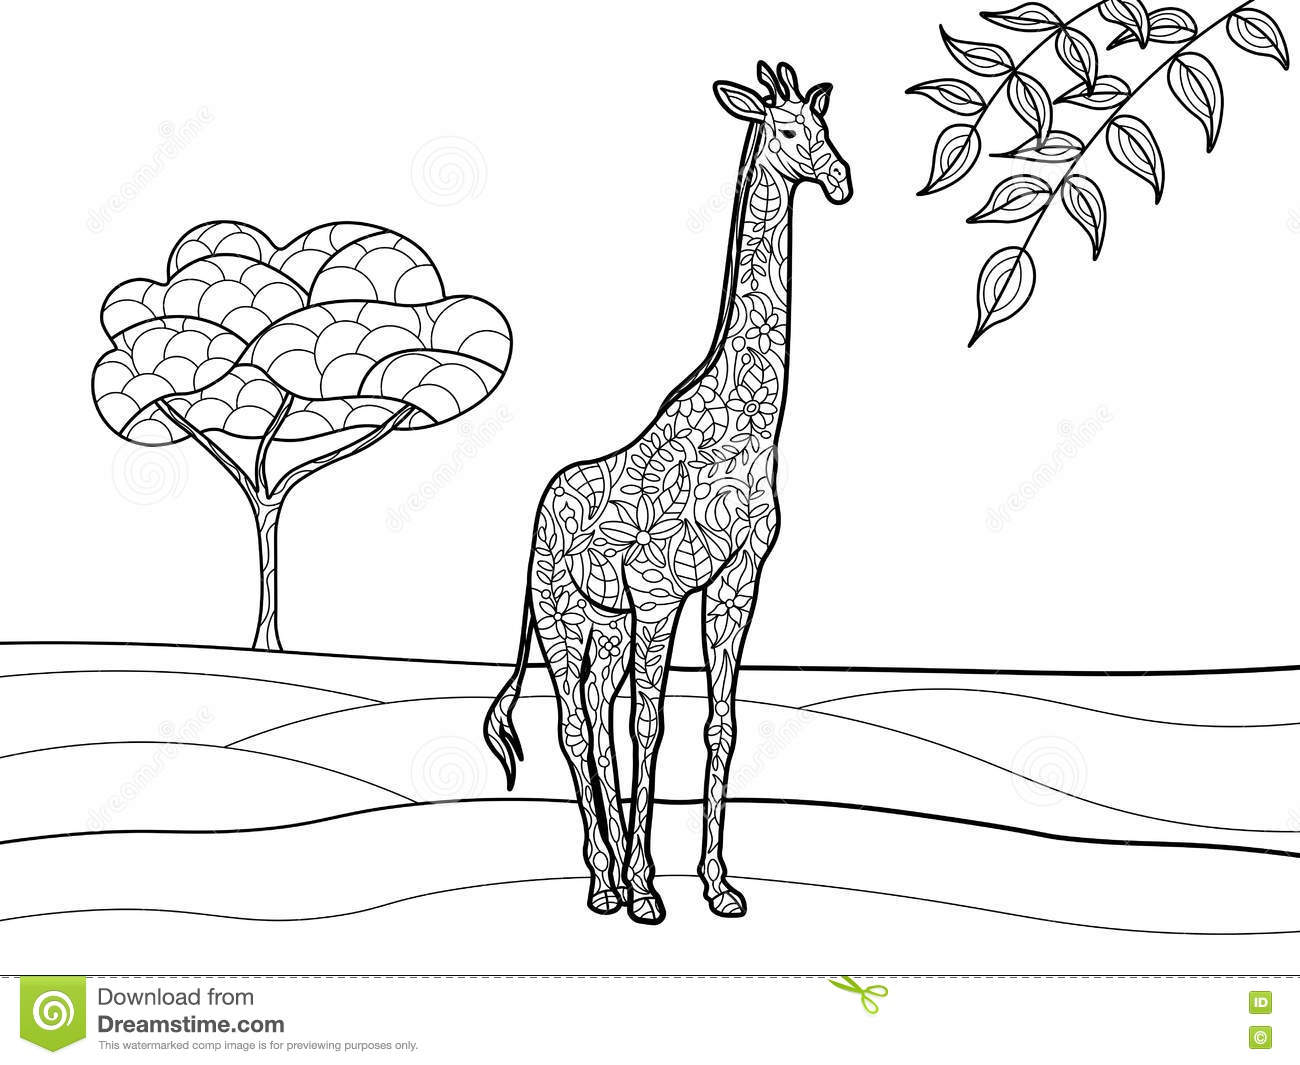 Coloriage Voiture Girafe.Coloriage Adulte Girafe